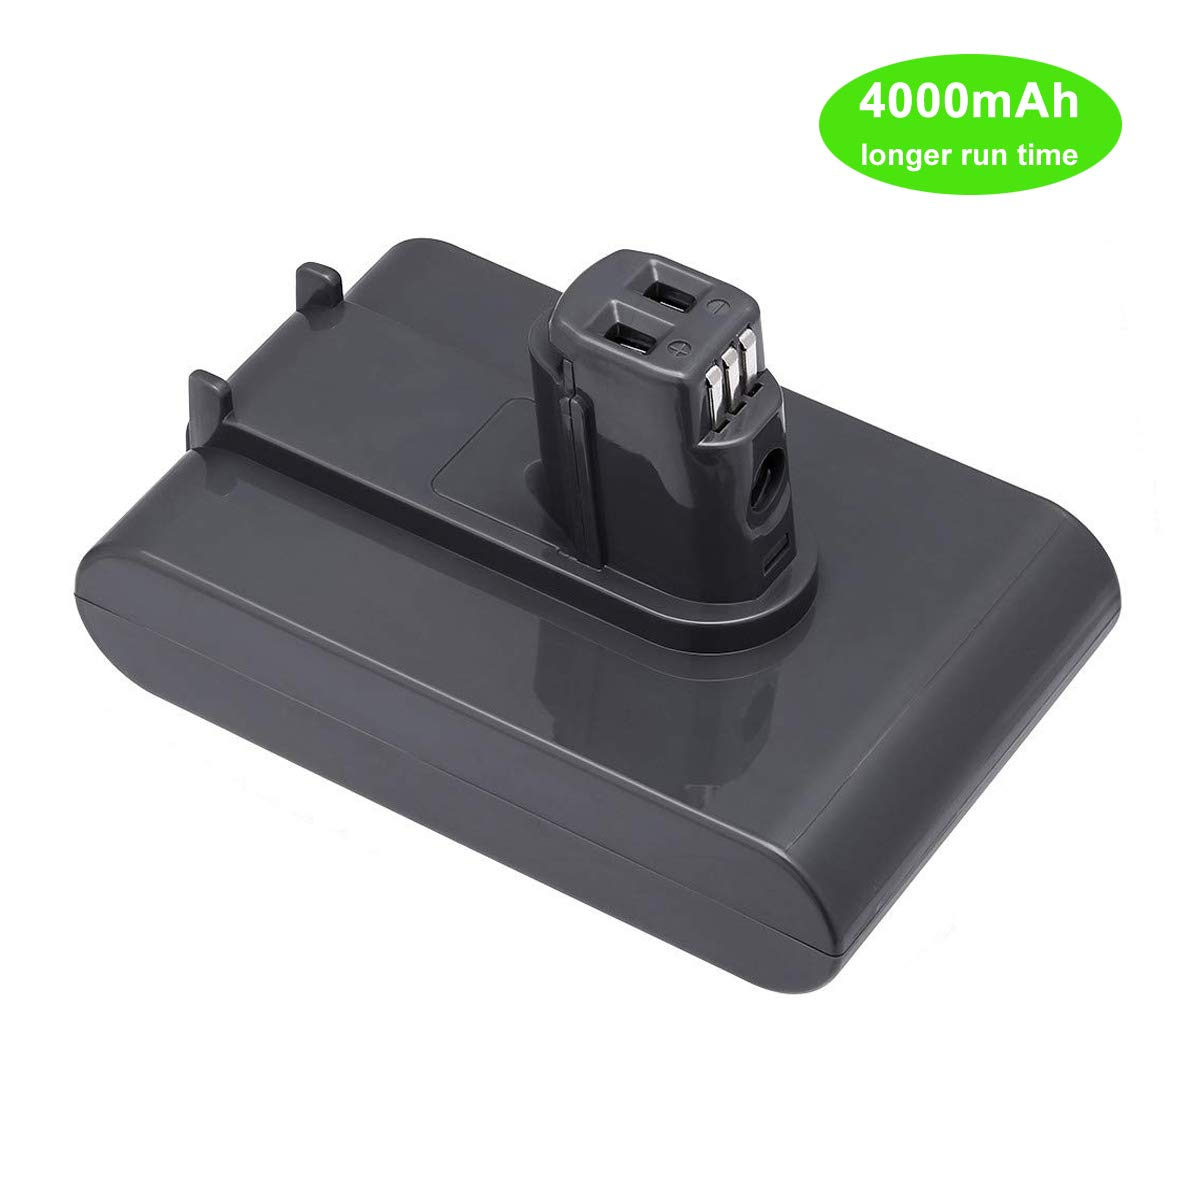 22.2V 4.0Ah DC31 Lithium Replacement Battery for Dyson 22.2V DC34 DC35 DC31 DC44 (Not Fit Type B, DC44 MK2) 917083-01 Handheld Vacuum